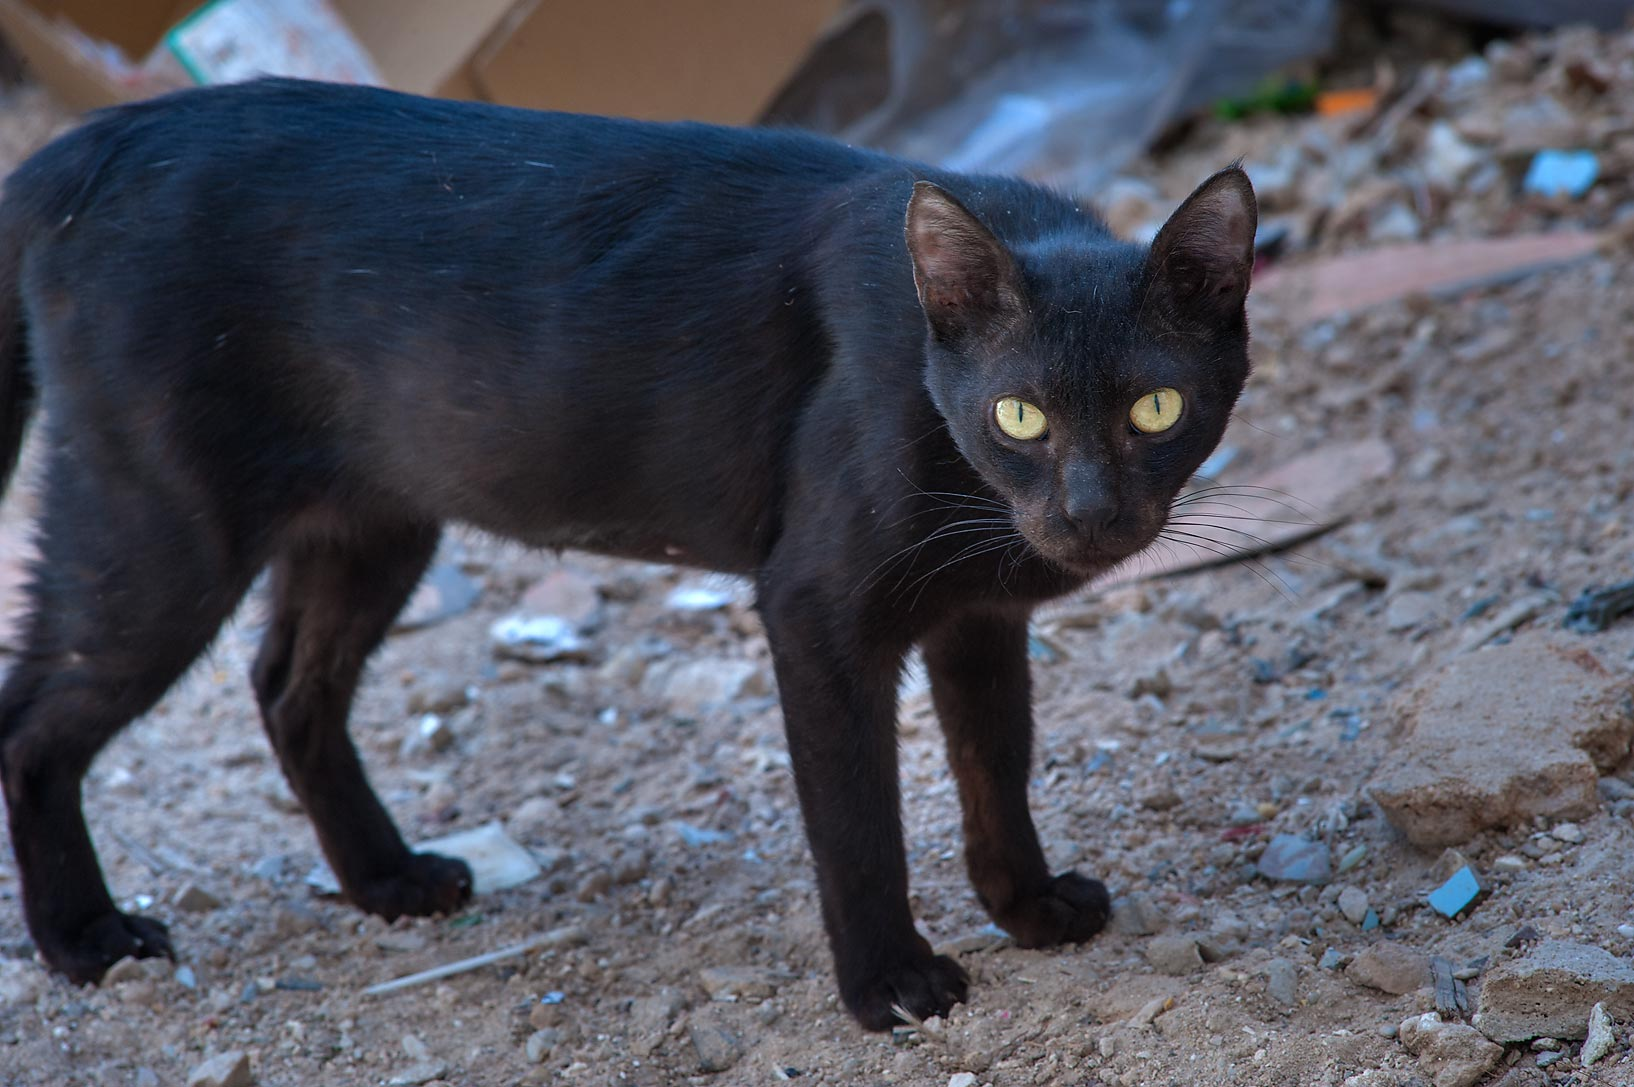 Black cat with yellow eyes near Al Najada St. in Musheirib area. Doha, Qatar